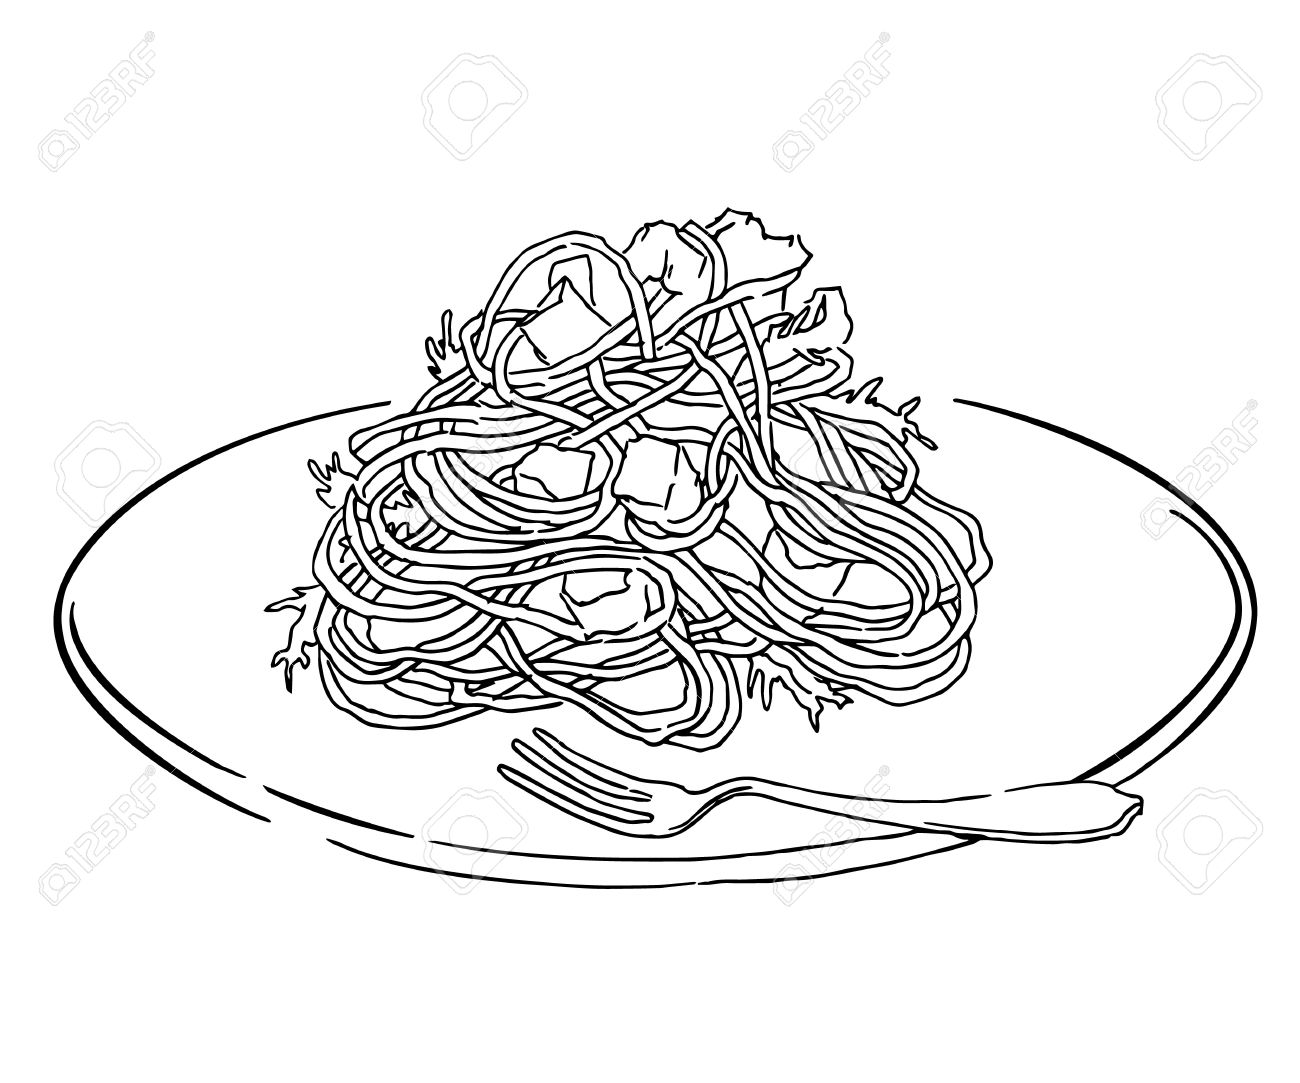 Vector Sketch Of Spaghetti Plate. Italian Food Draw. Isolated ...